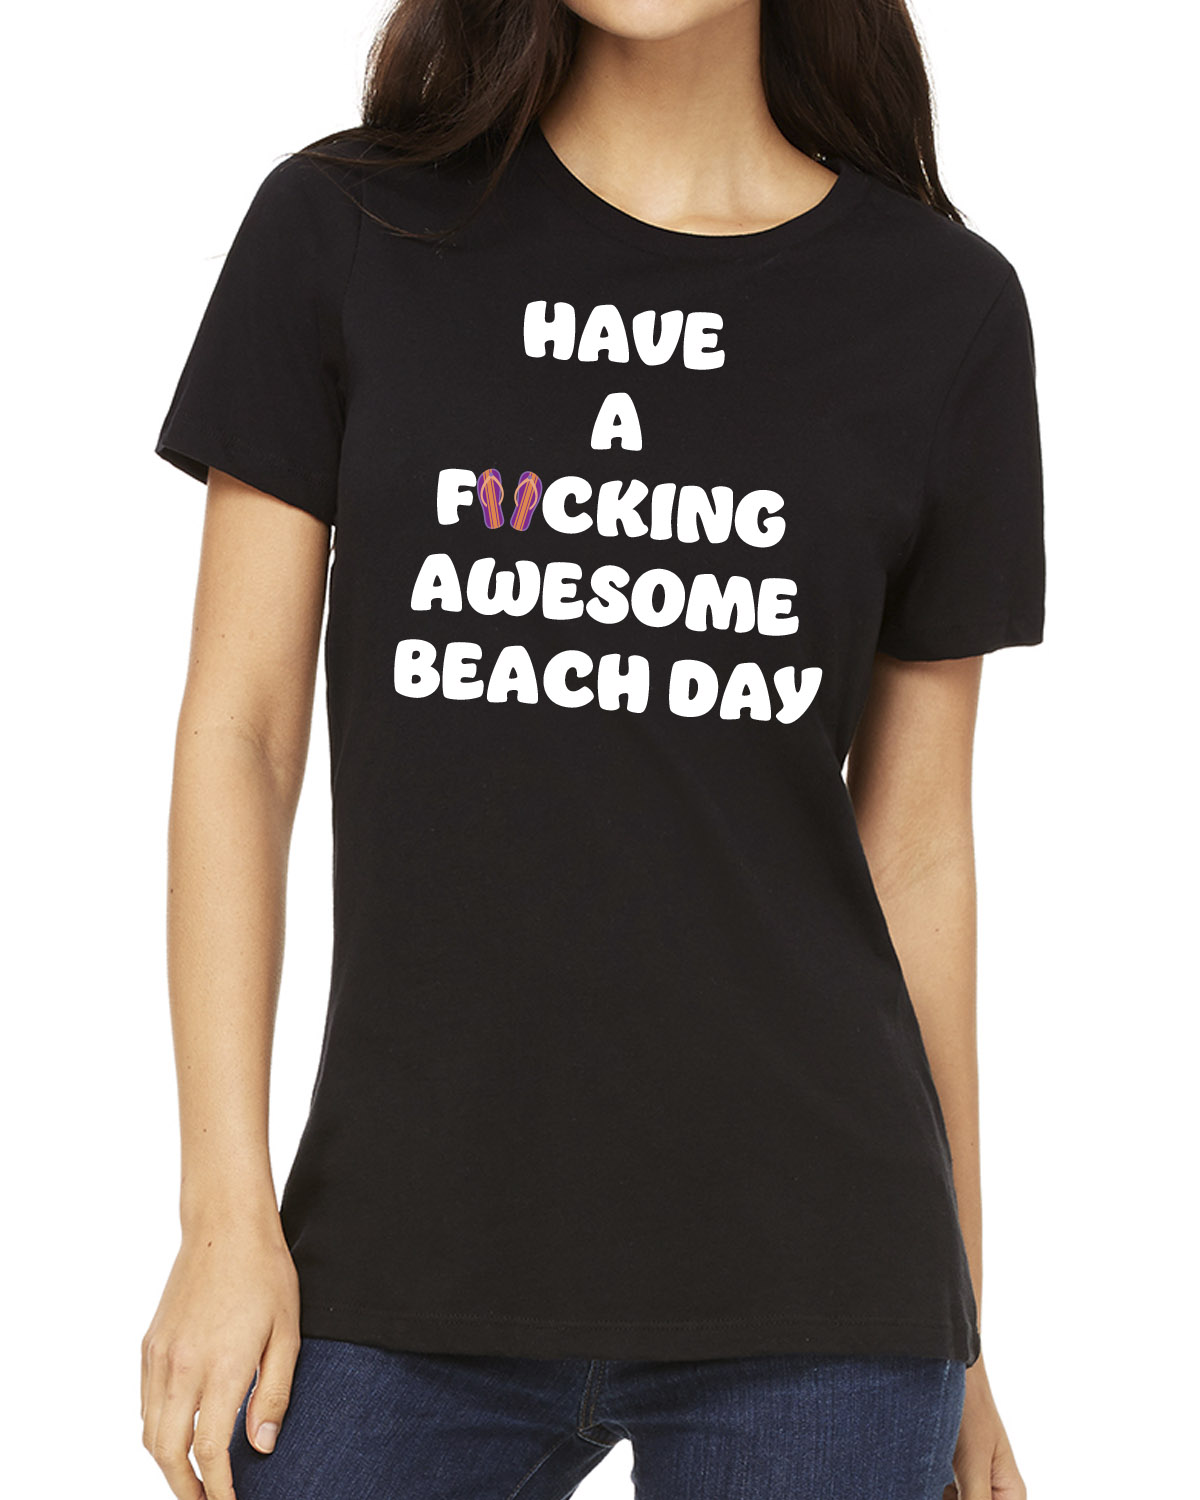 Women's Have a F*cking Awesome Beach Day t-shirt (black)